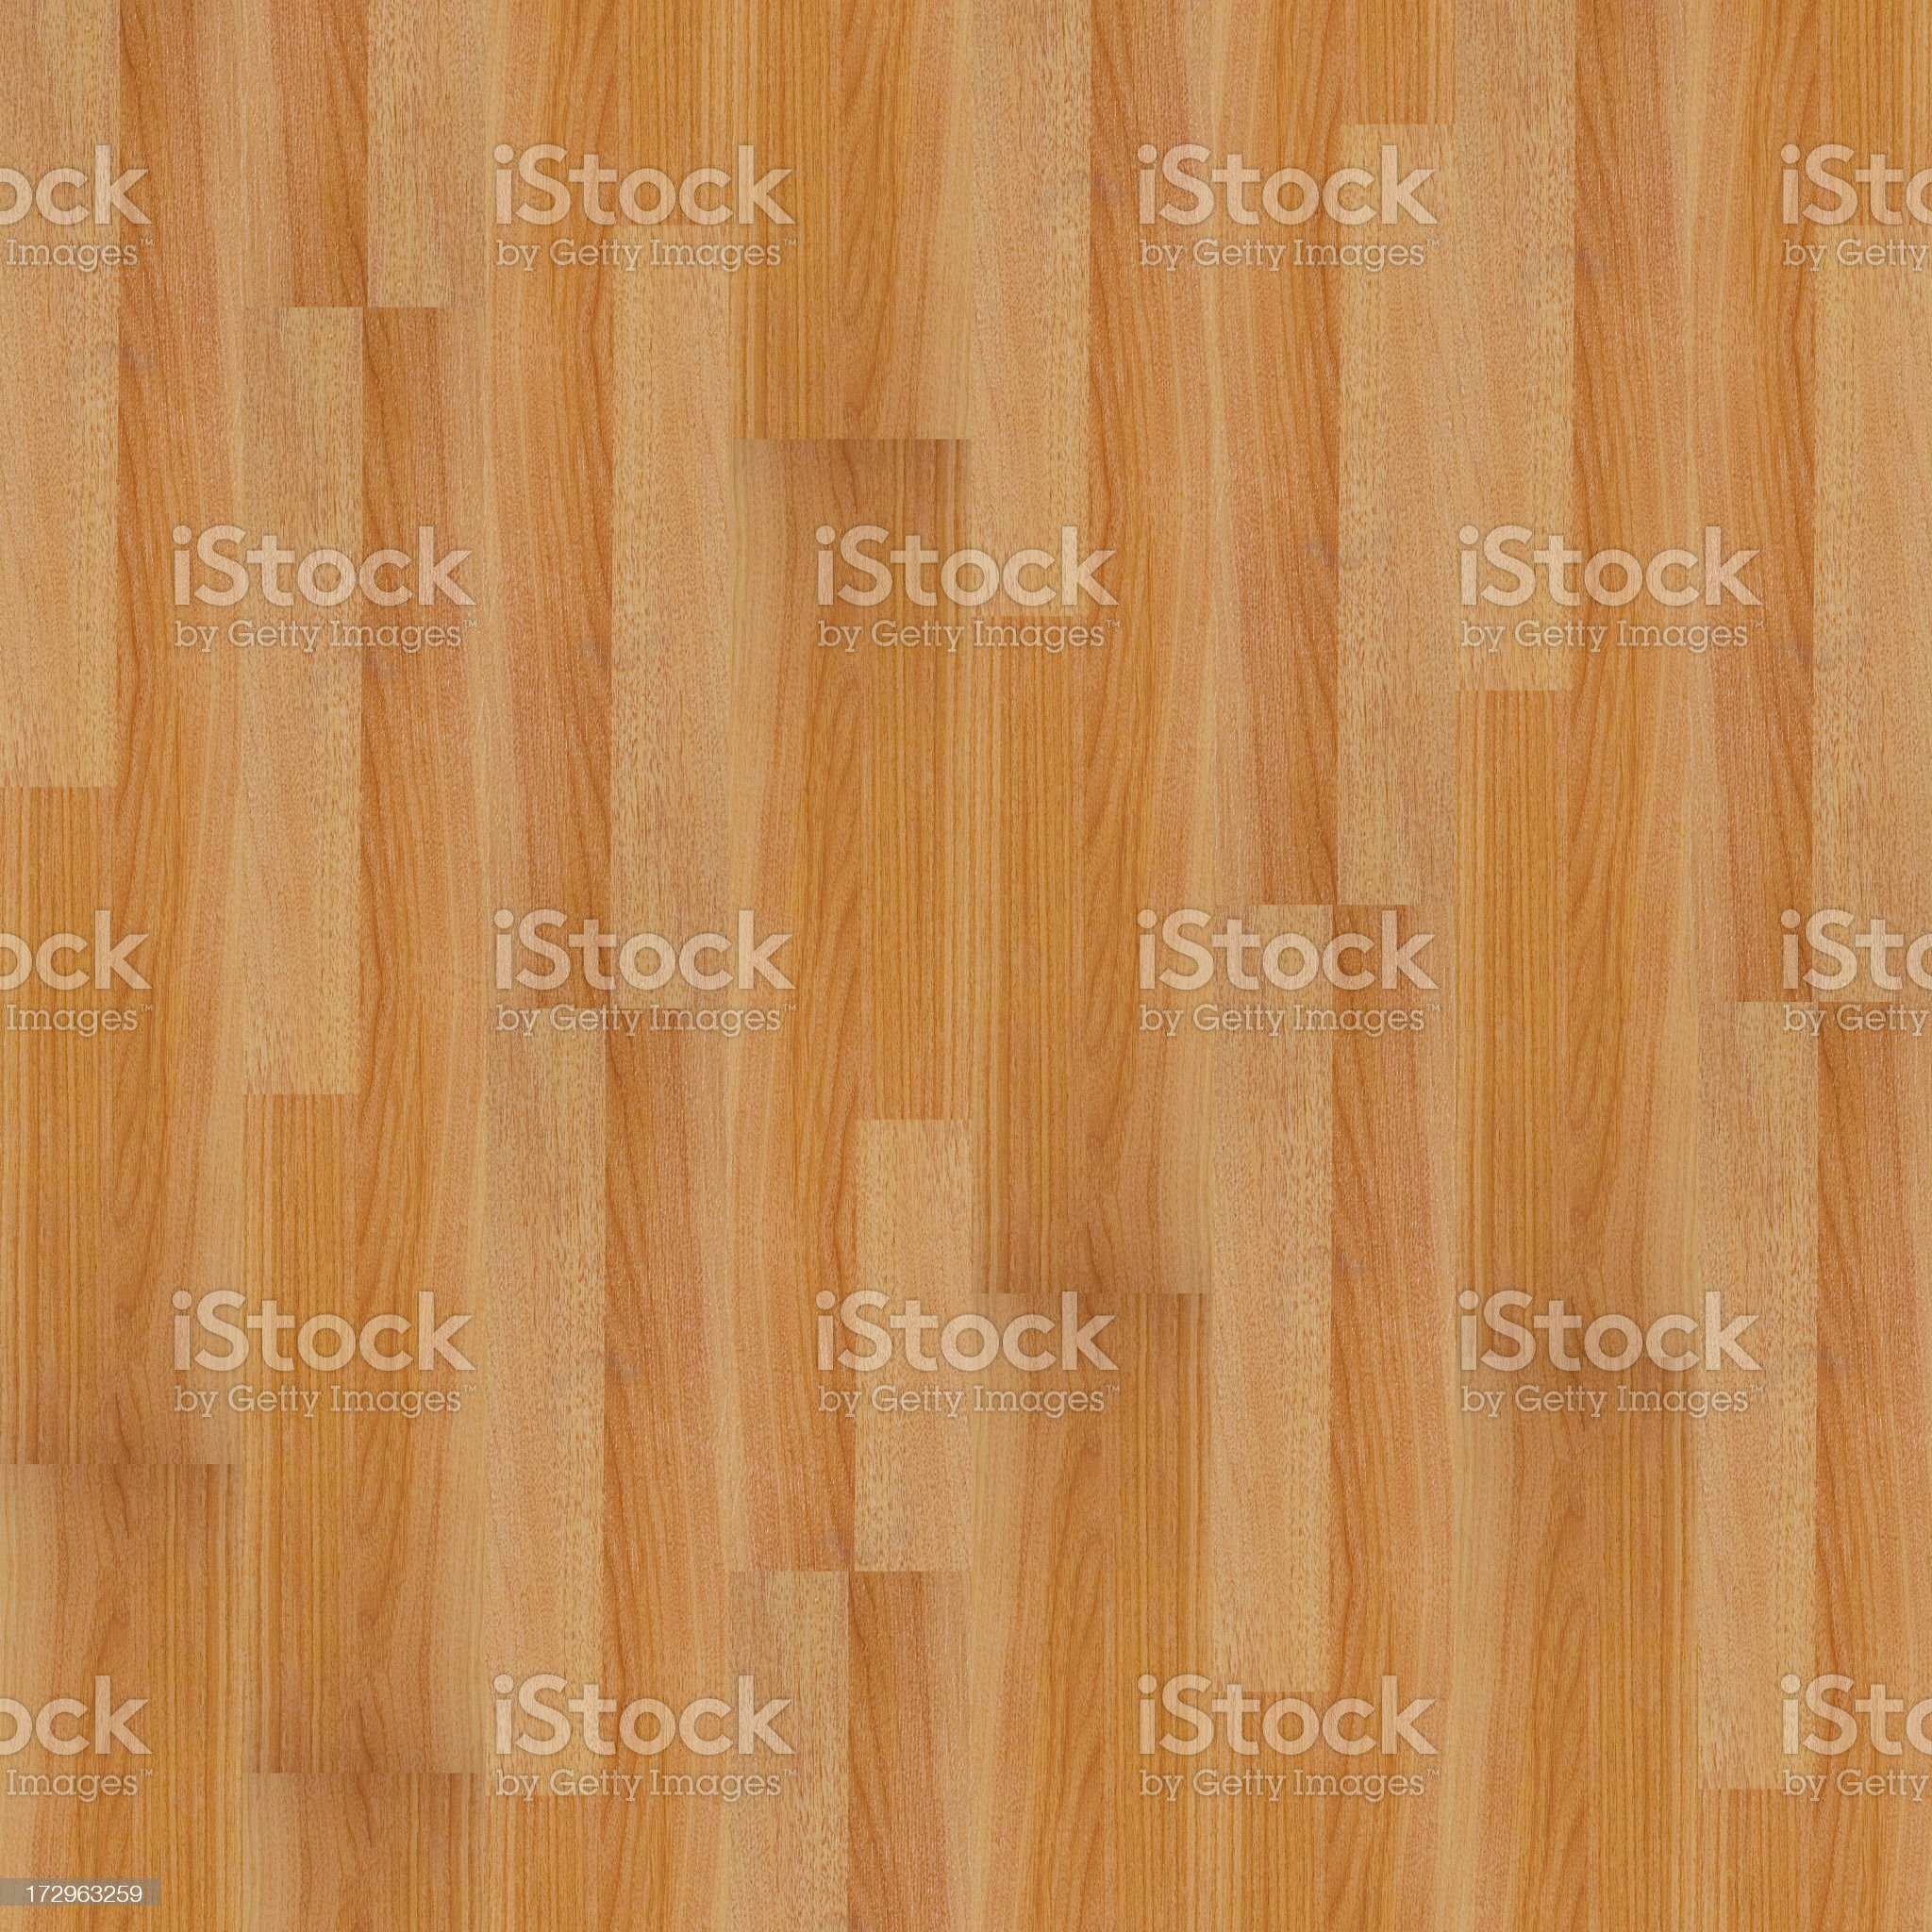 Oak-stained wooden parquet floors royalty-free stock photo